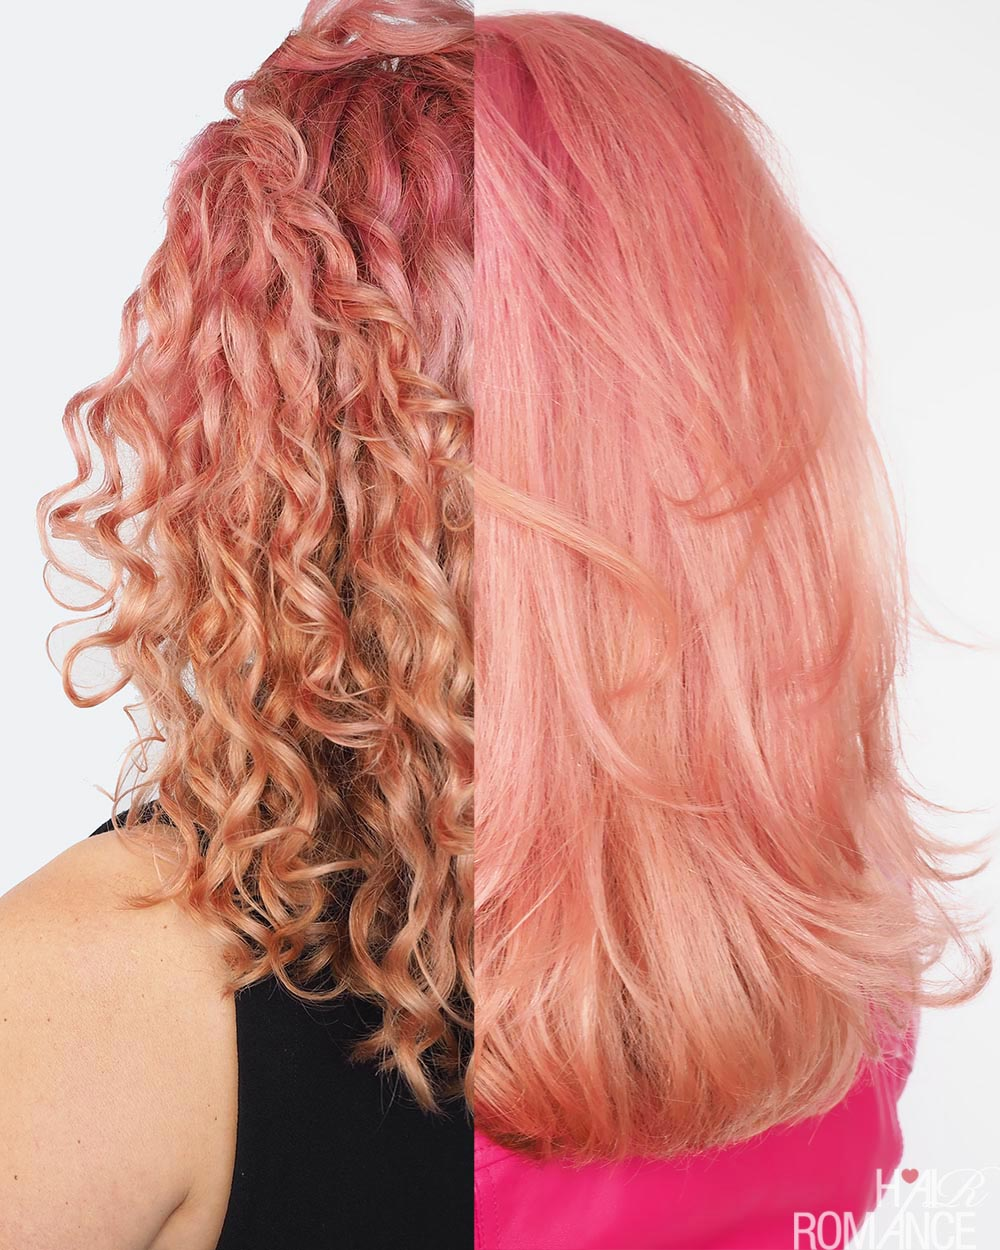 How To Get Your Curls Back After Straightening Curly Hair Hair